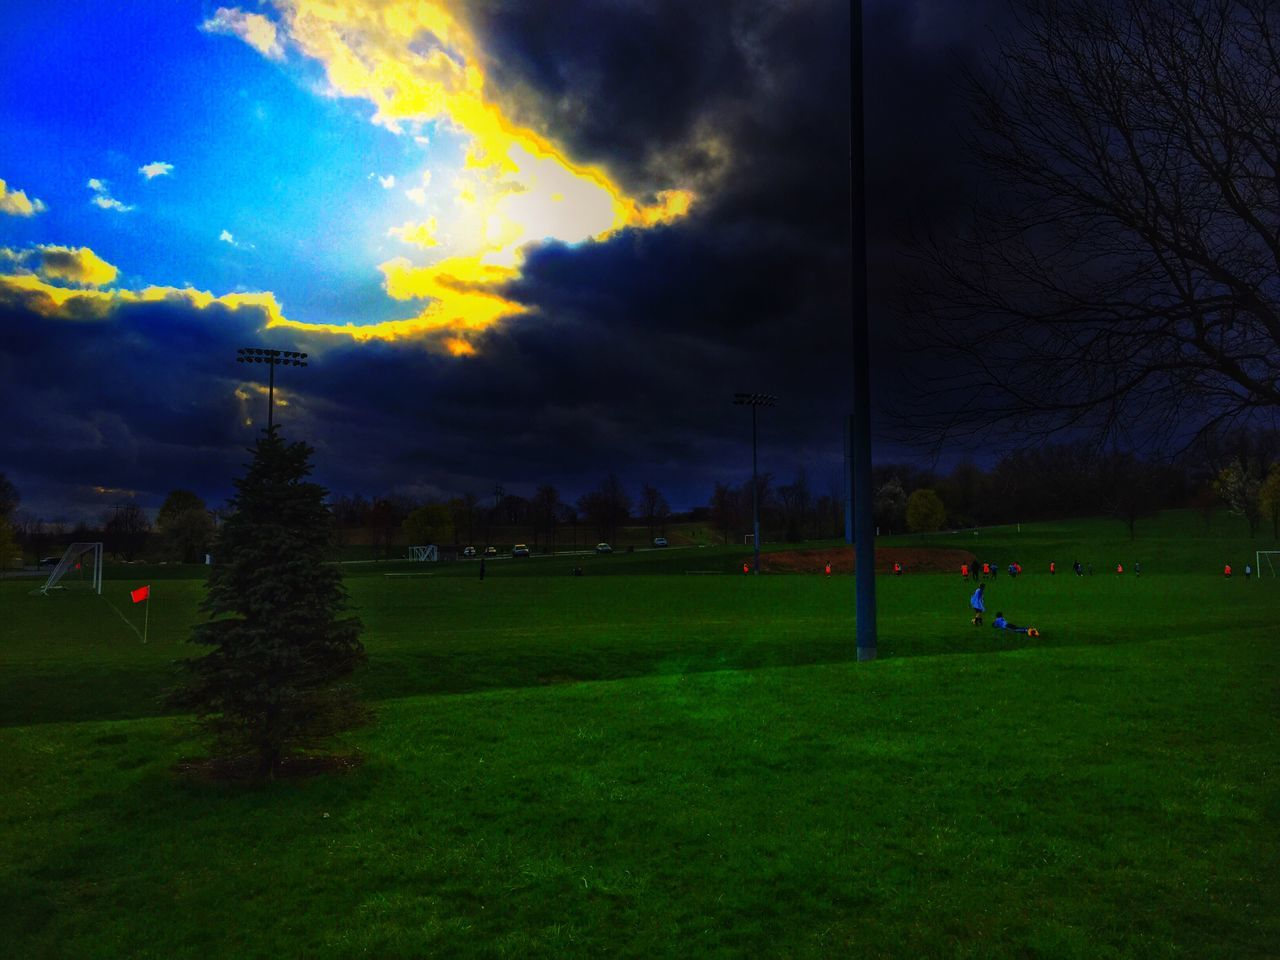 Storm Stormy Weather Spring Snow In Spring Landscape Soccer Field Soccer Landscape_Collection Eye4photography  EyeEm Nature Lover